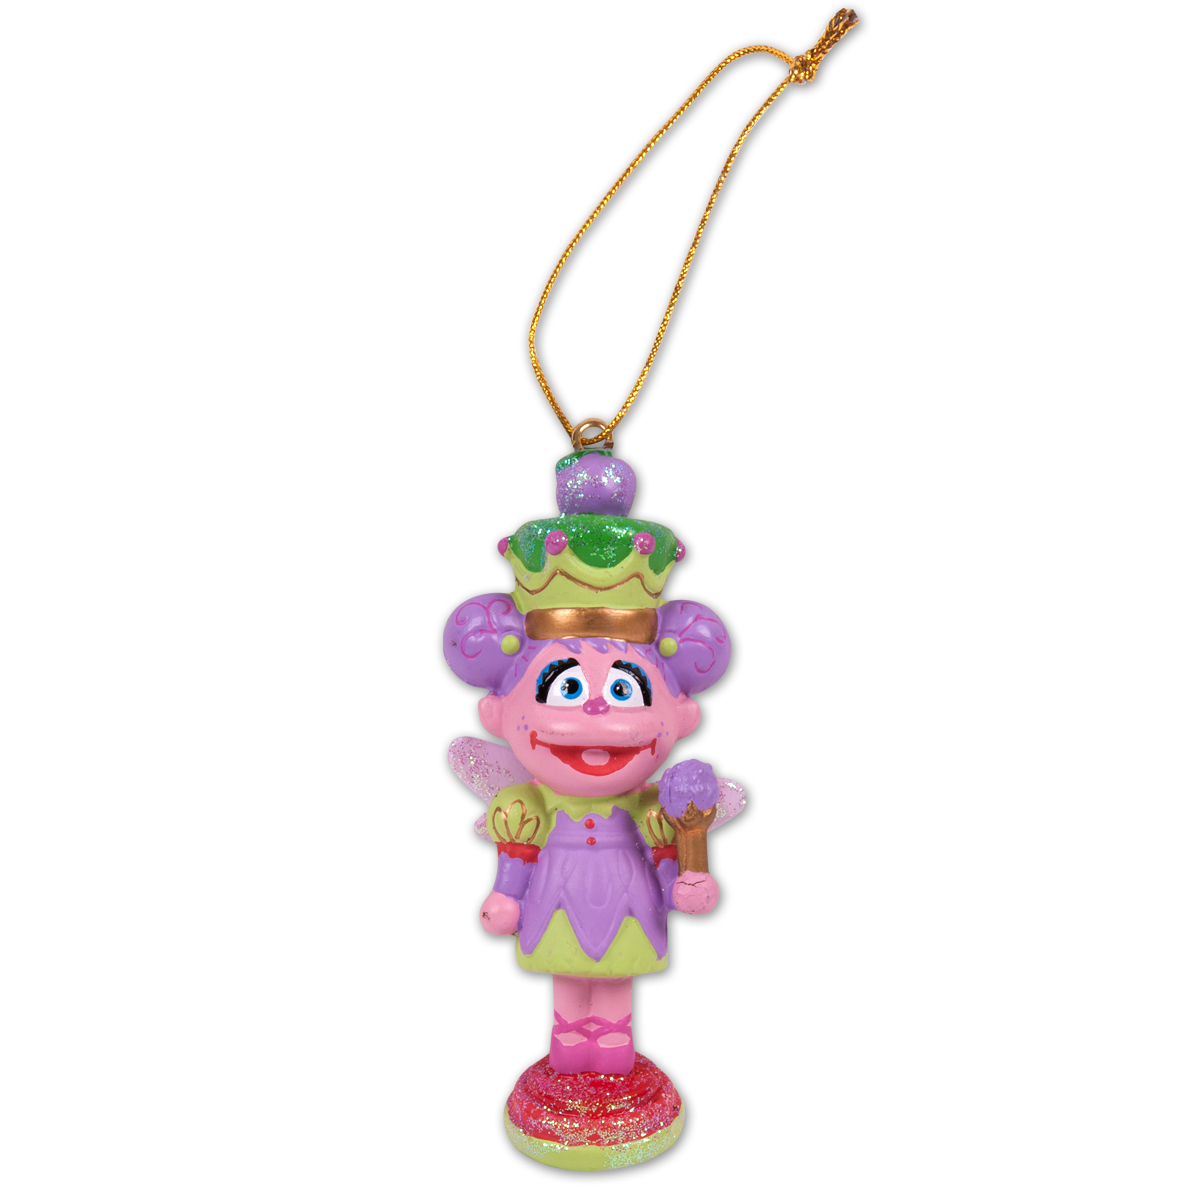 "Sesame Street 3.5"" Abby Nutcracker Ornament"